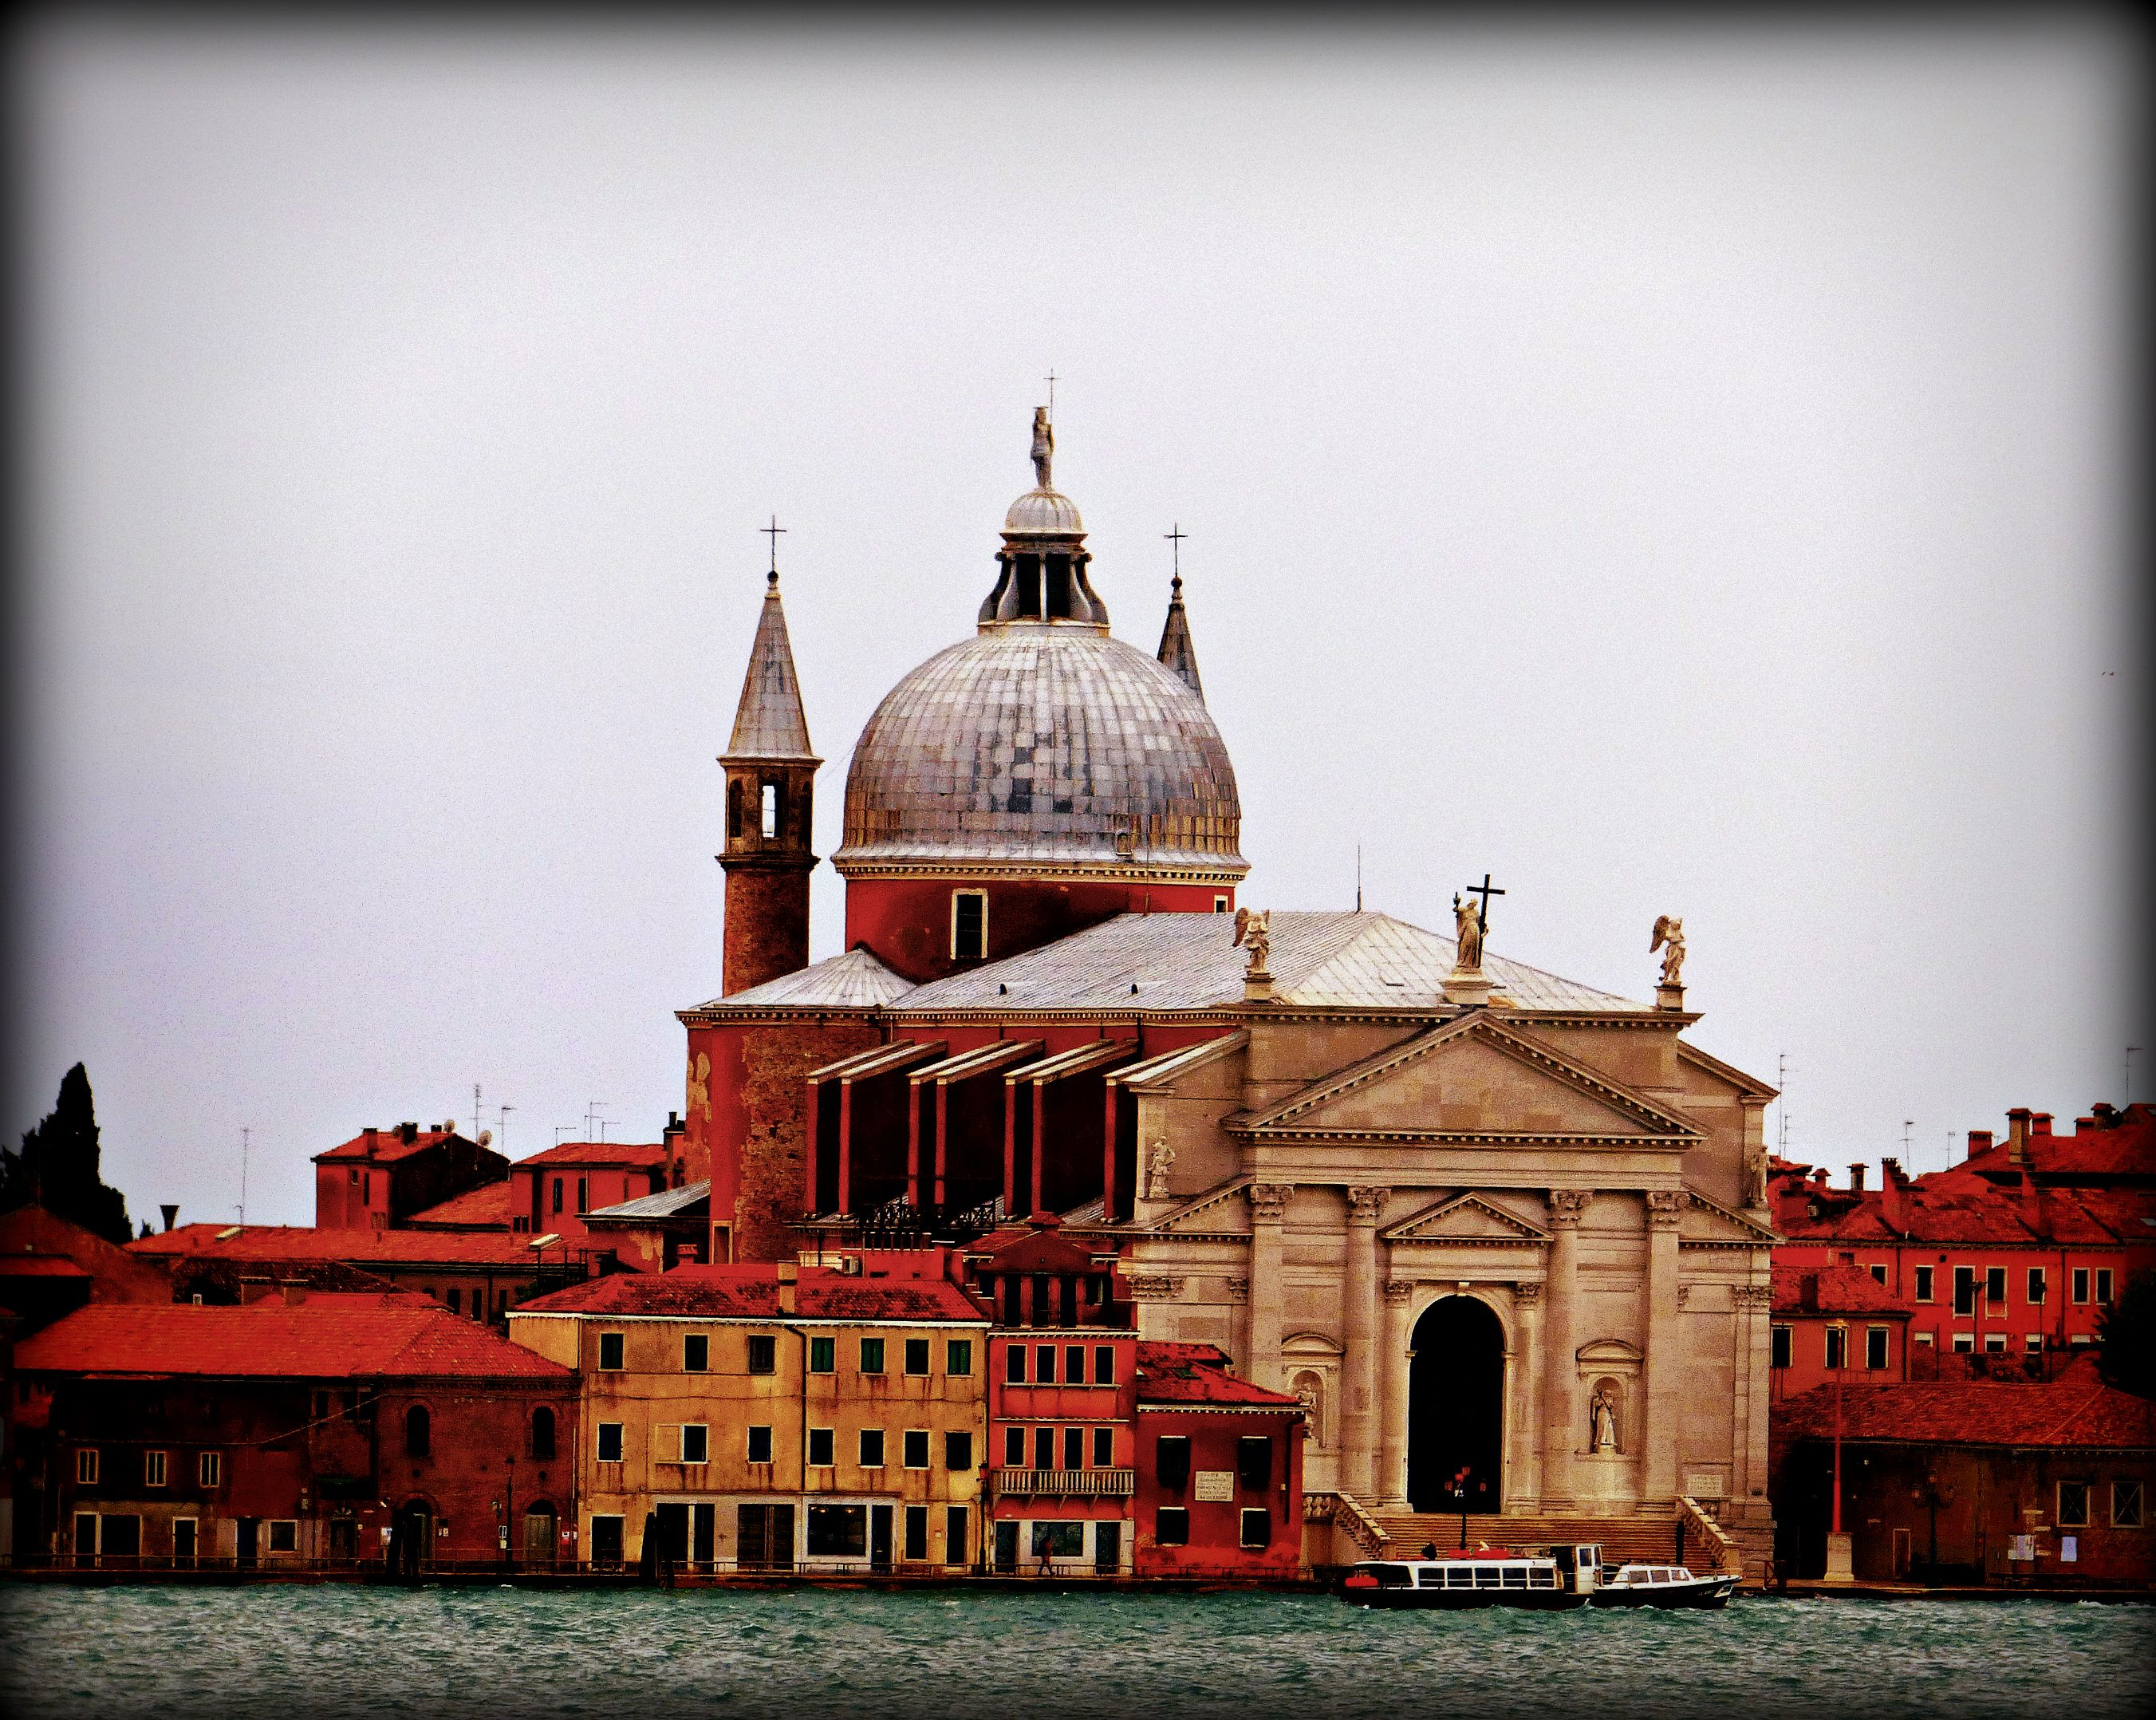 Beautiful Church in Venice - Jon Lander ©2016 - the Doge's Palace has a nice view of this and I've consulted the maps and have no idea what it's called...